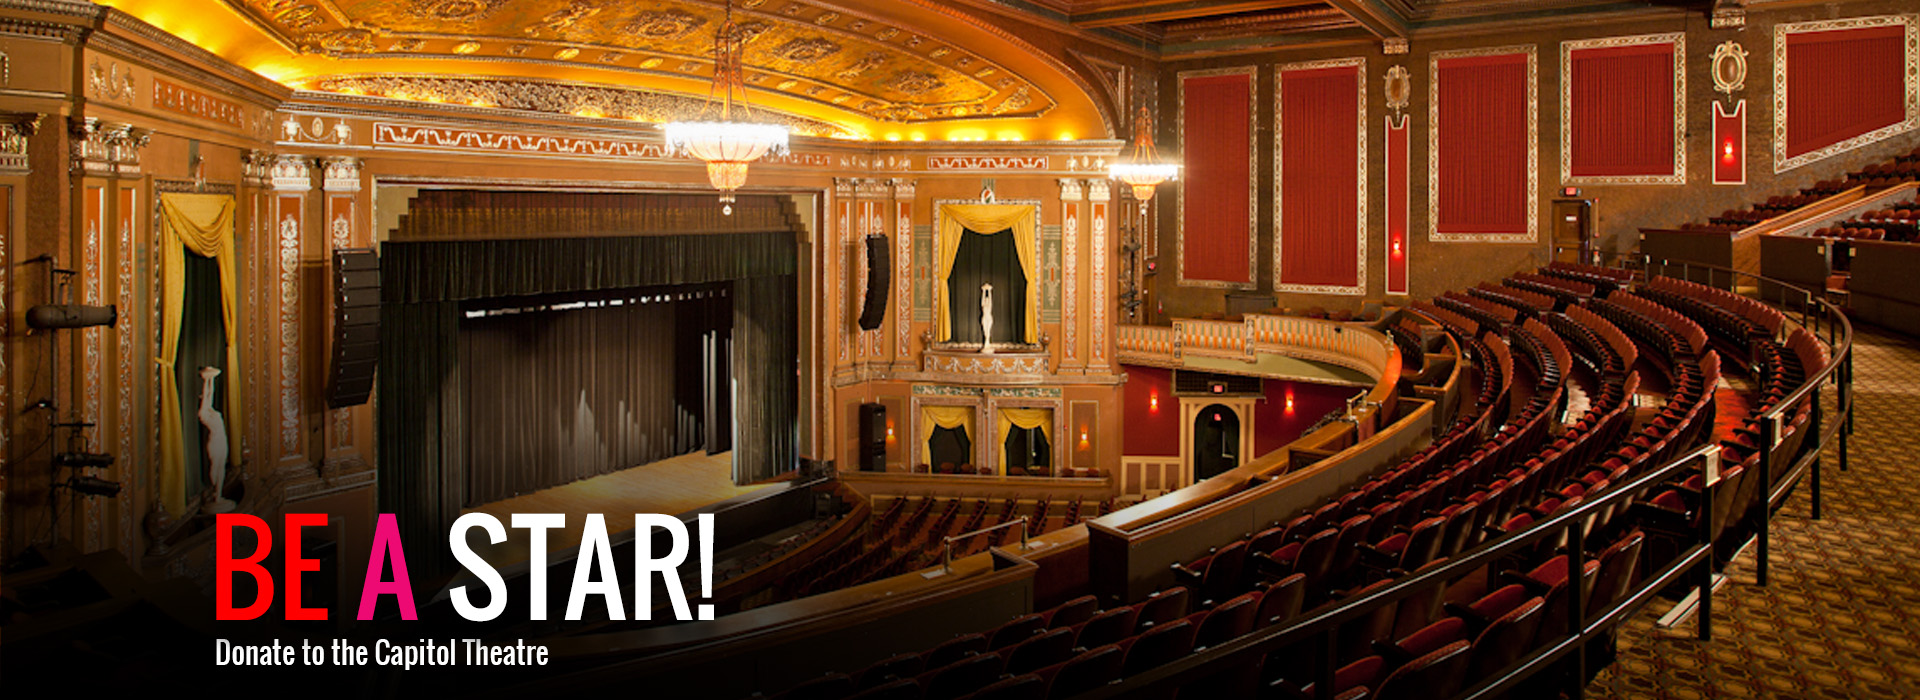 Donate To The Capitol Theatre